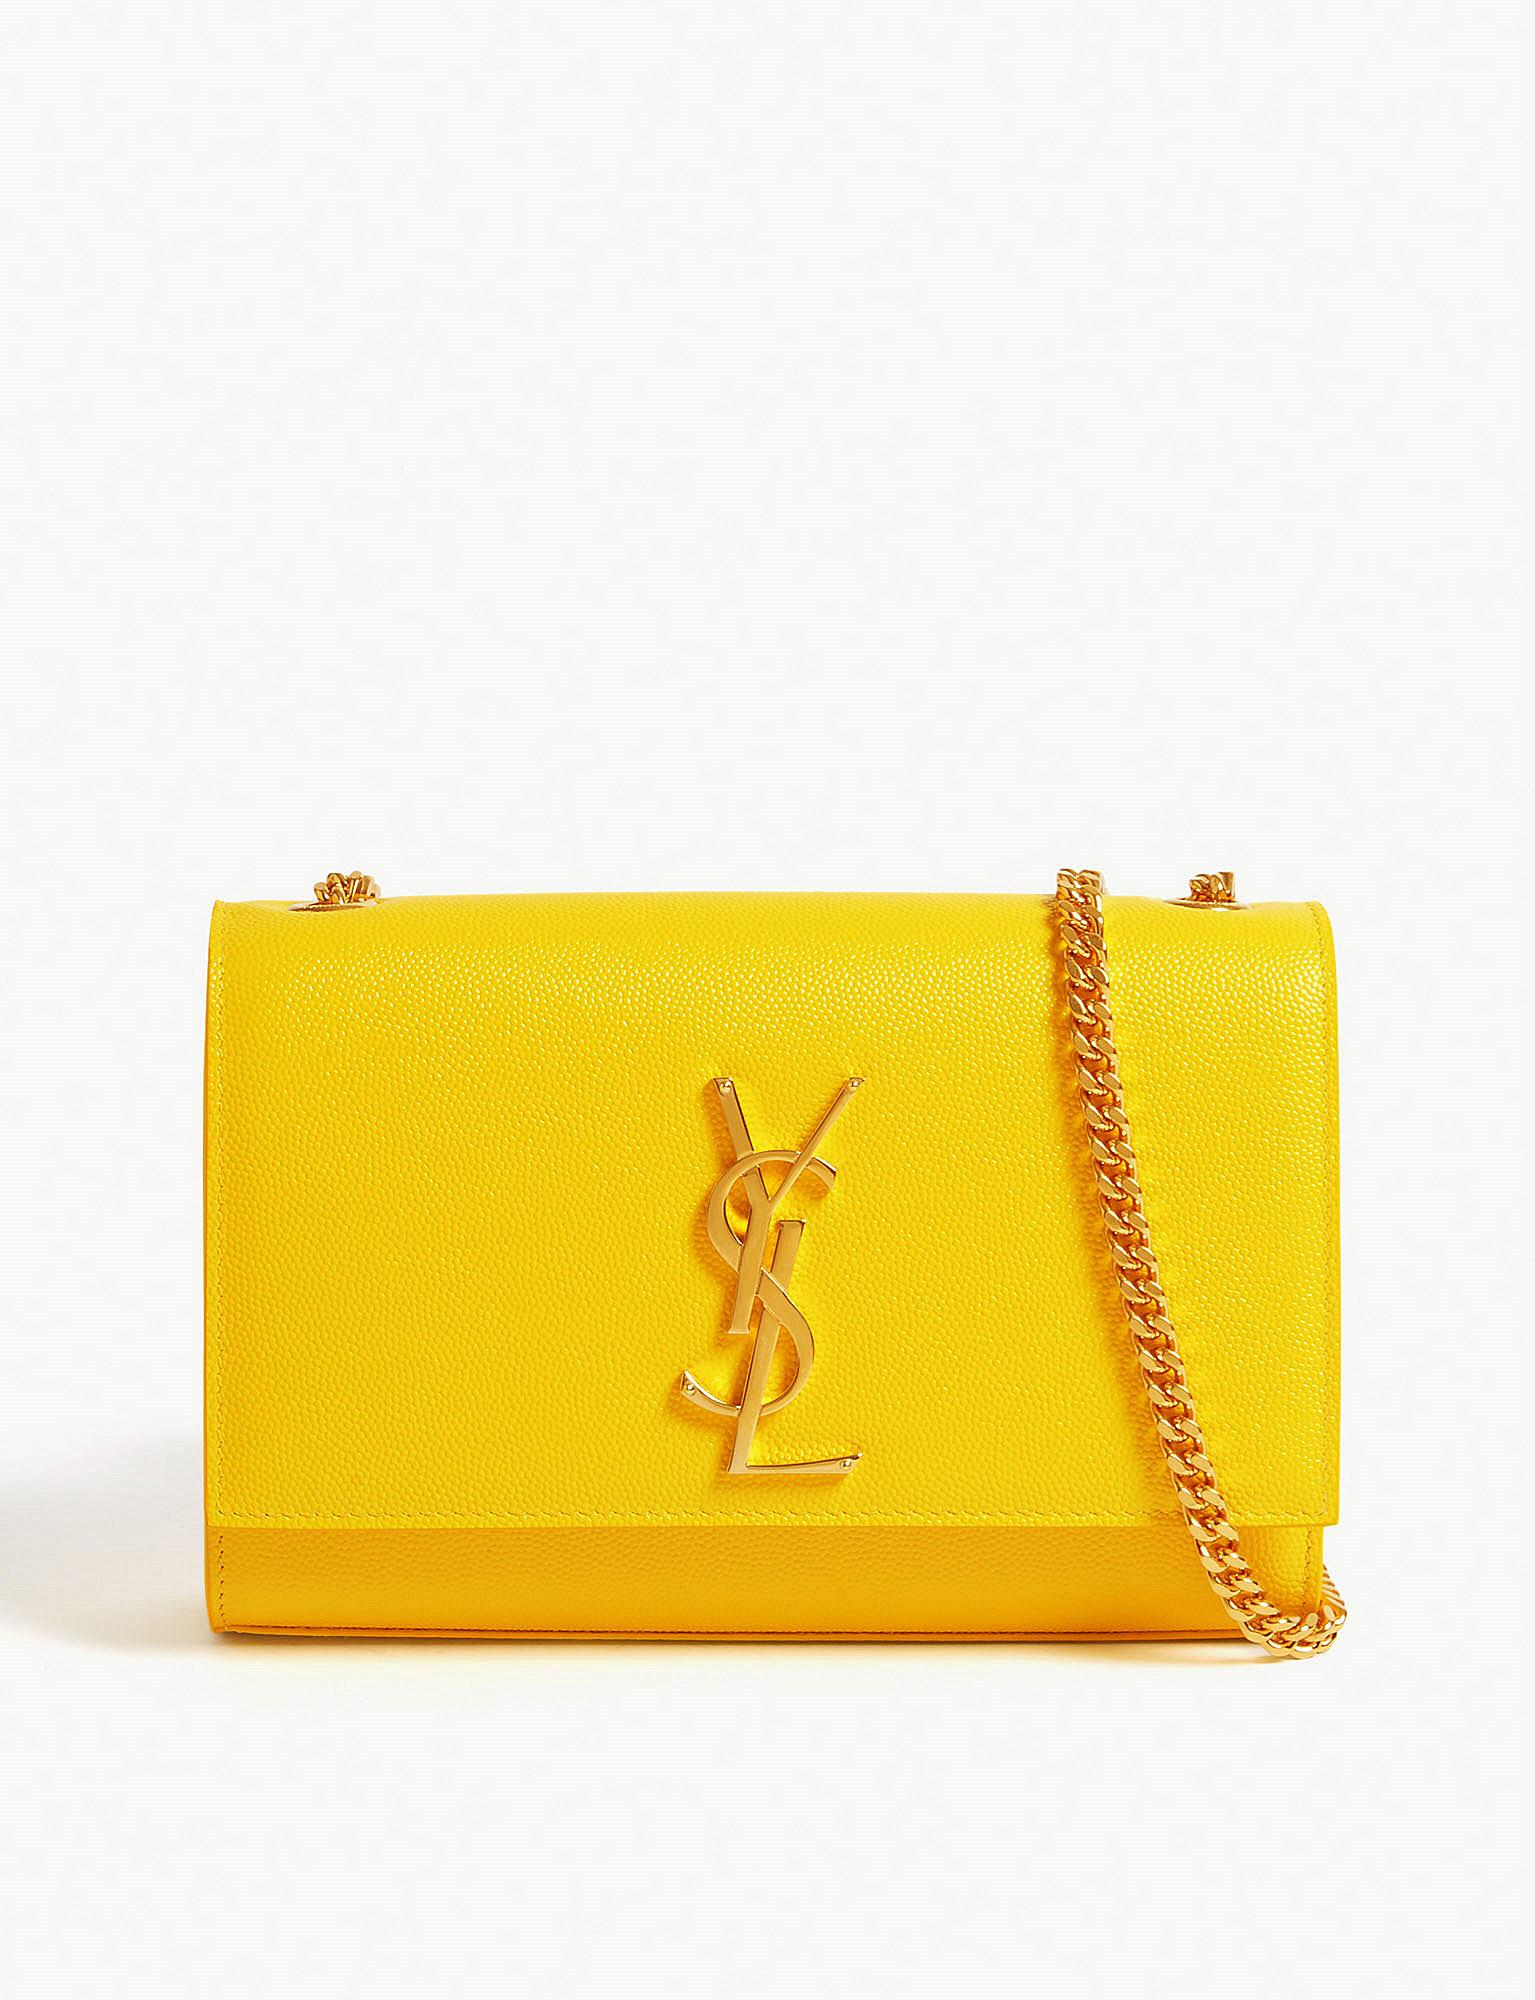 saint-laurent-Mimosa-yellow-Kate-Leather-Wallet-On-Chain